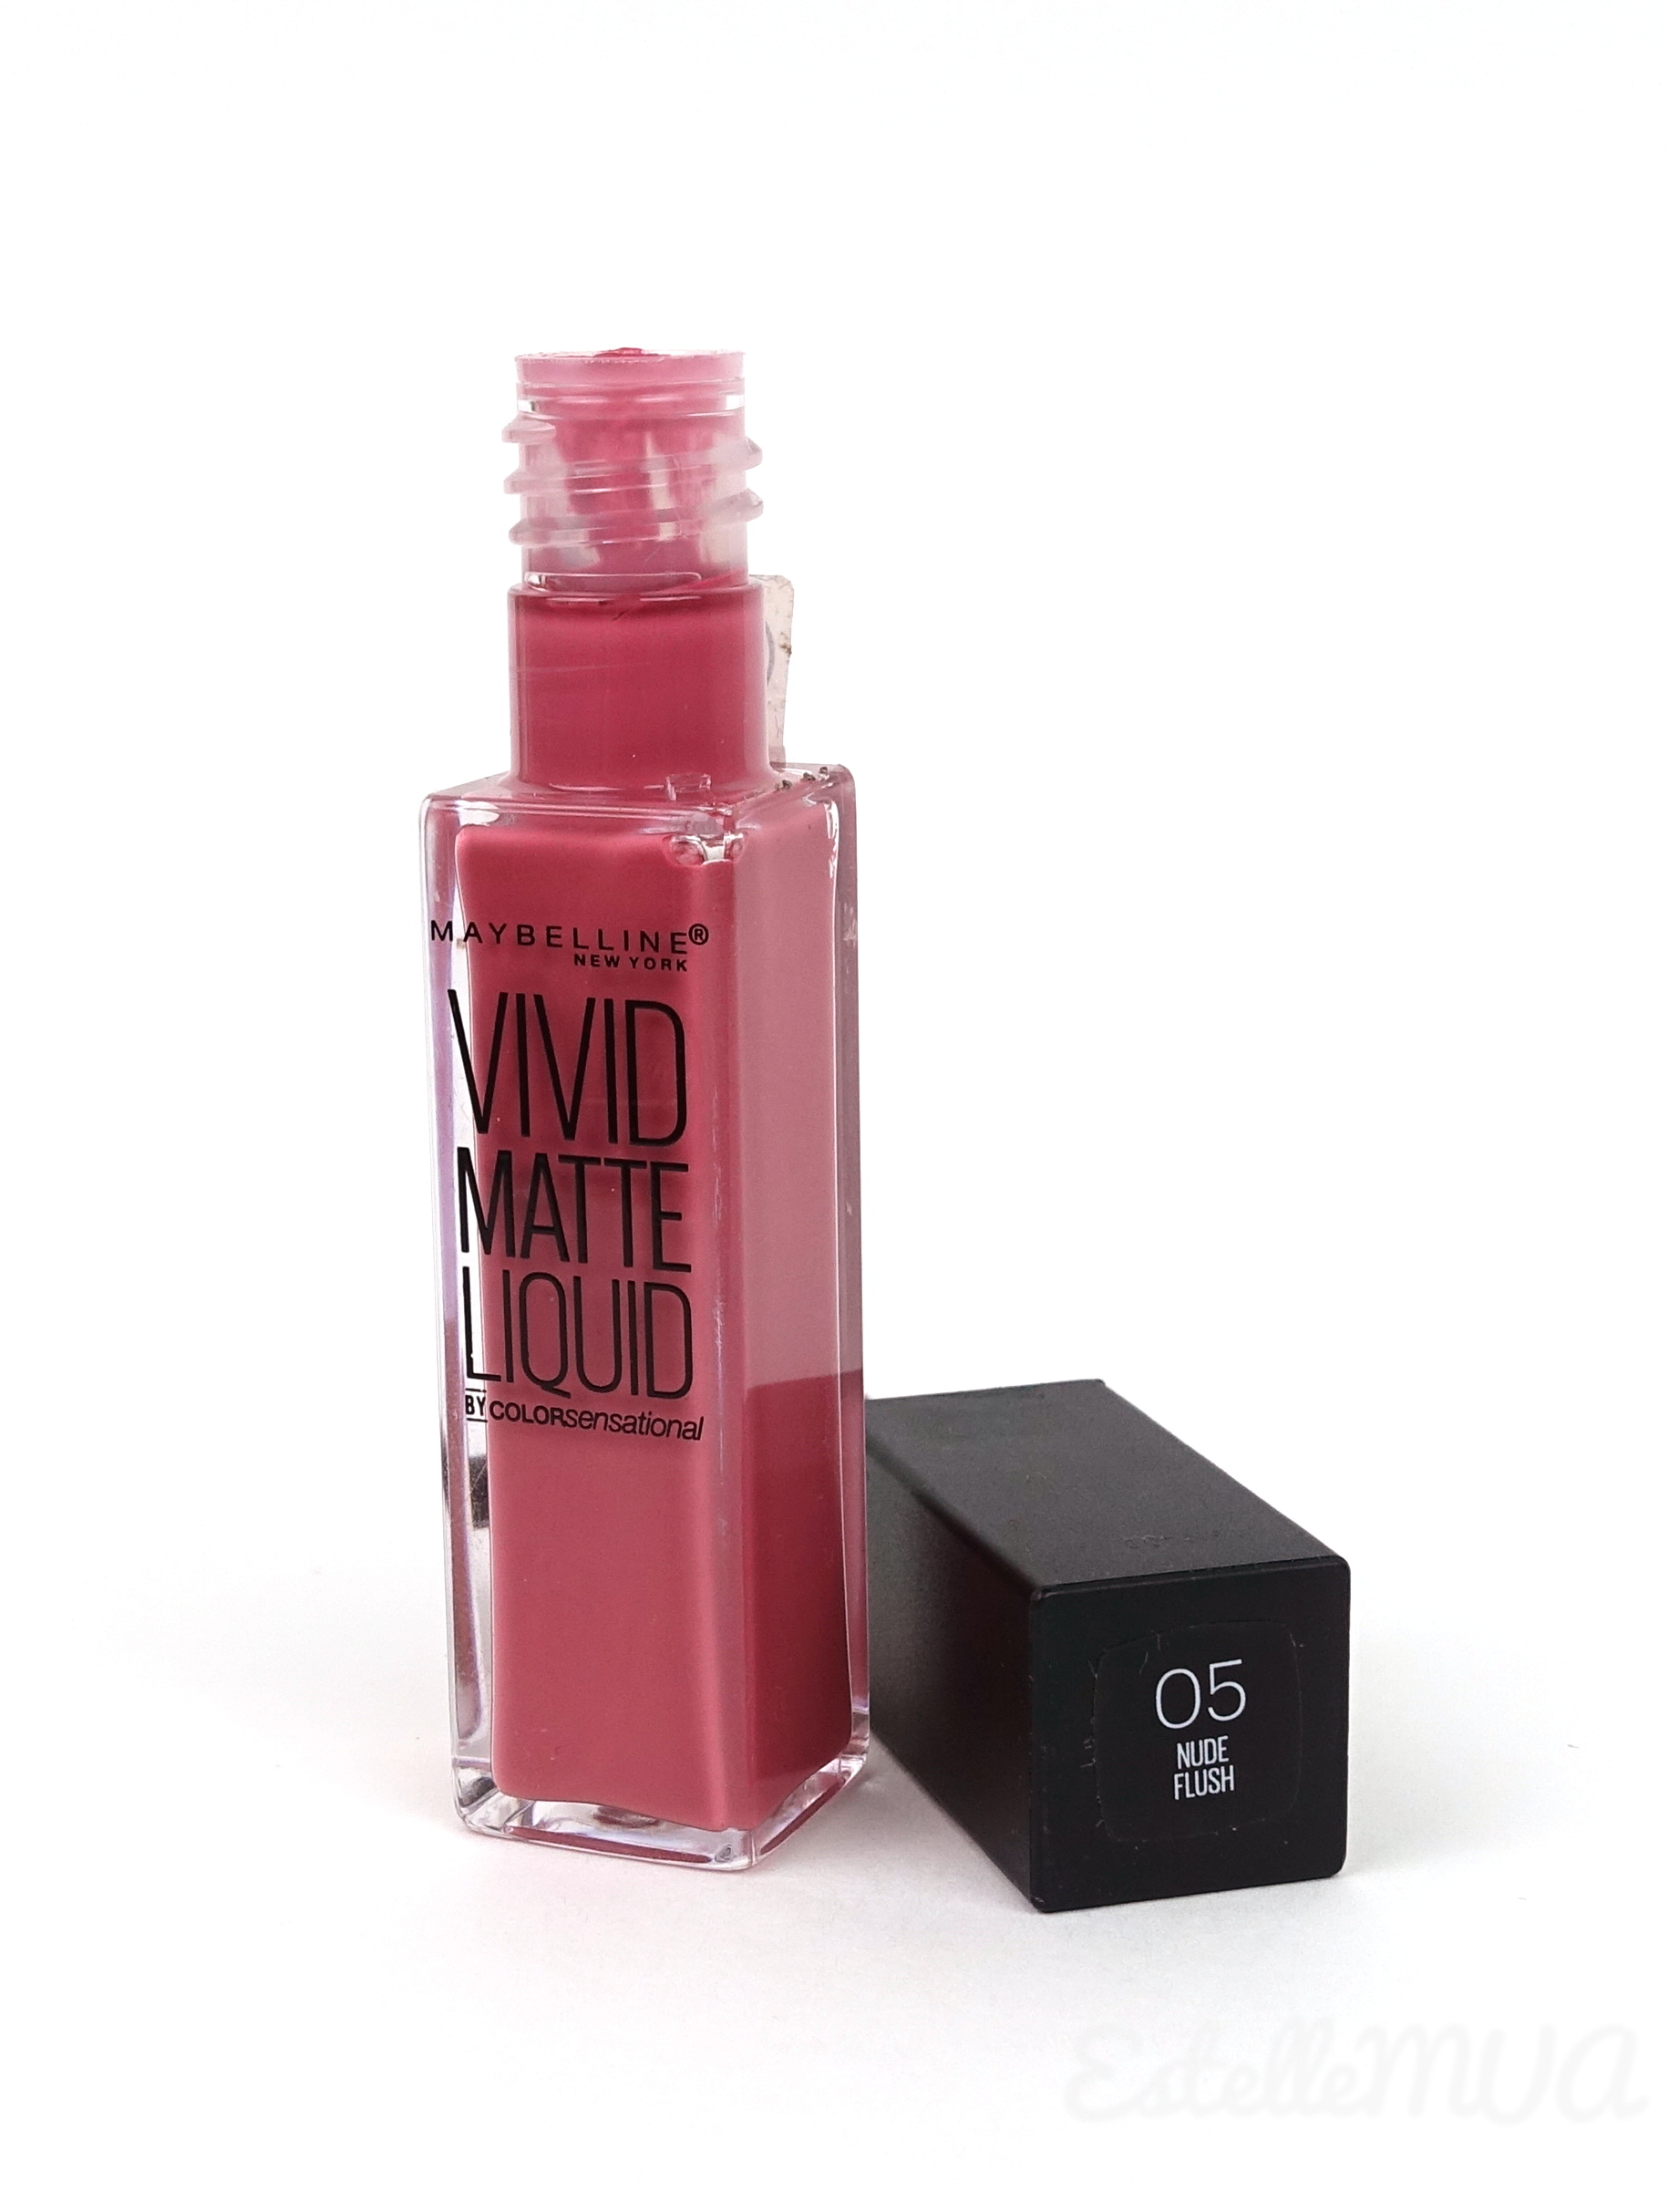 Vivid Matte Liquid 05 Nude Flush by Maybelline